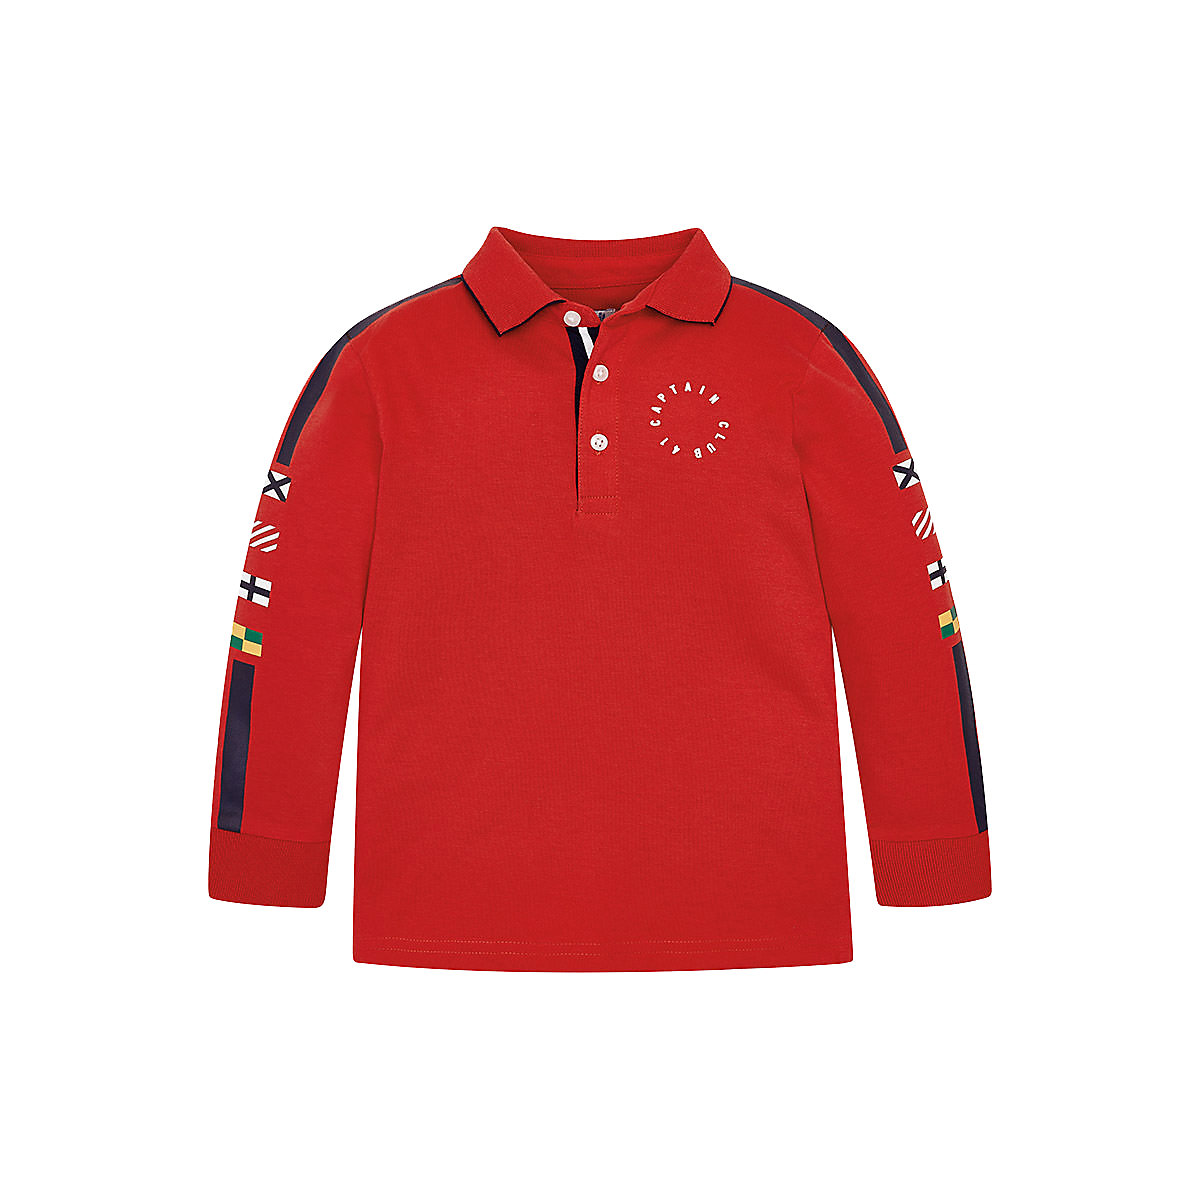 MAYORAL Polo Shirts 10681478 Children Clothing T-shirt Shirt The Print For Boys